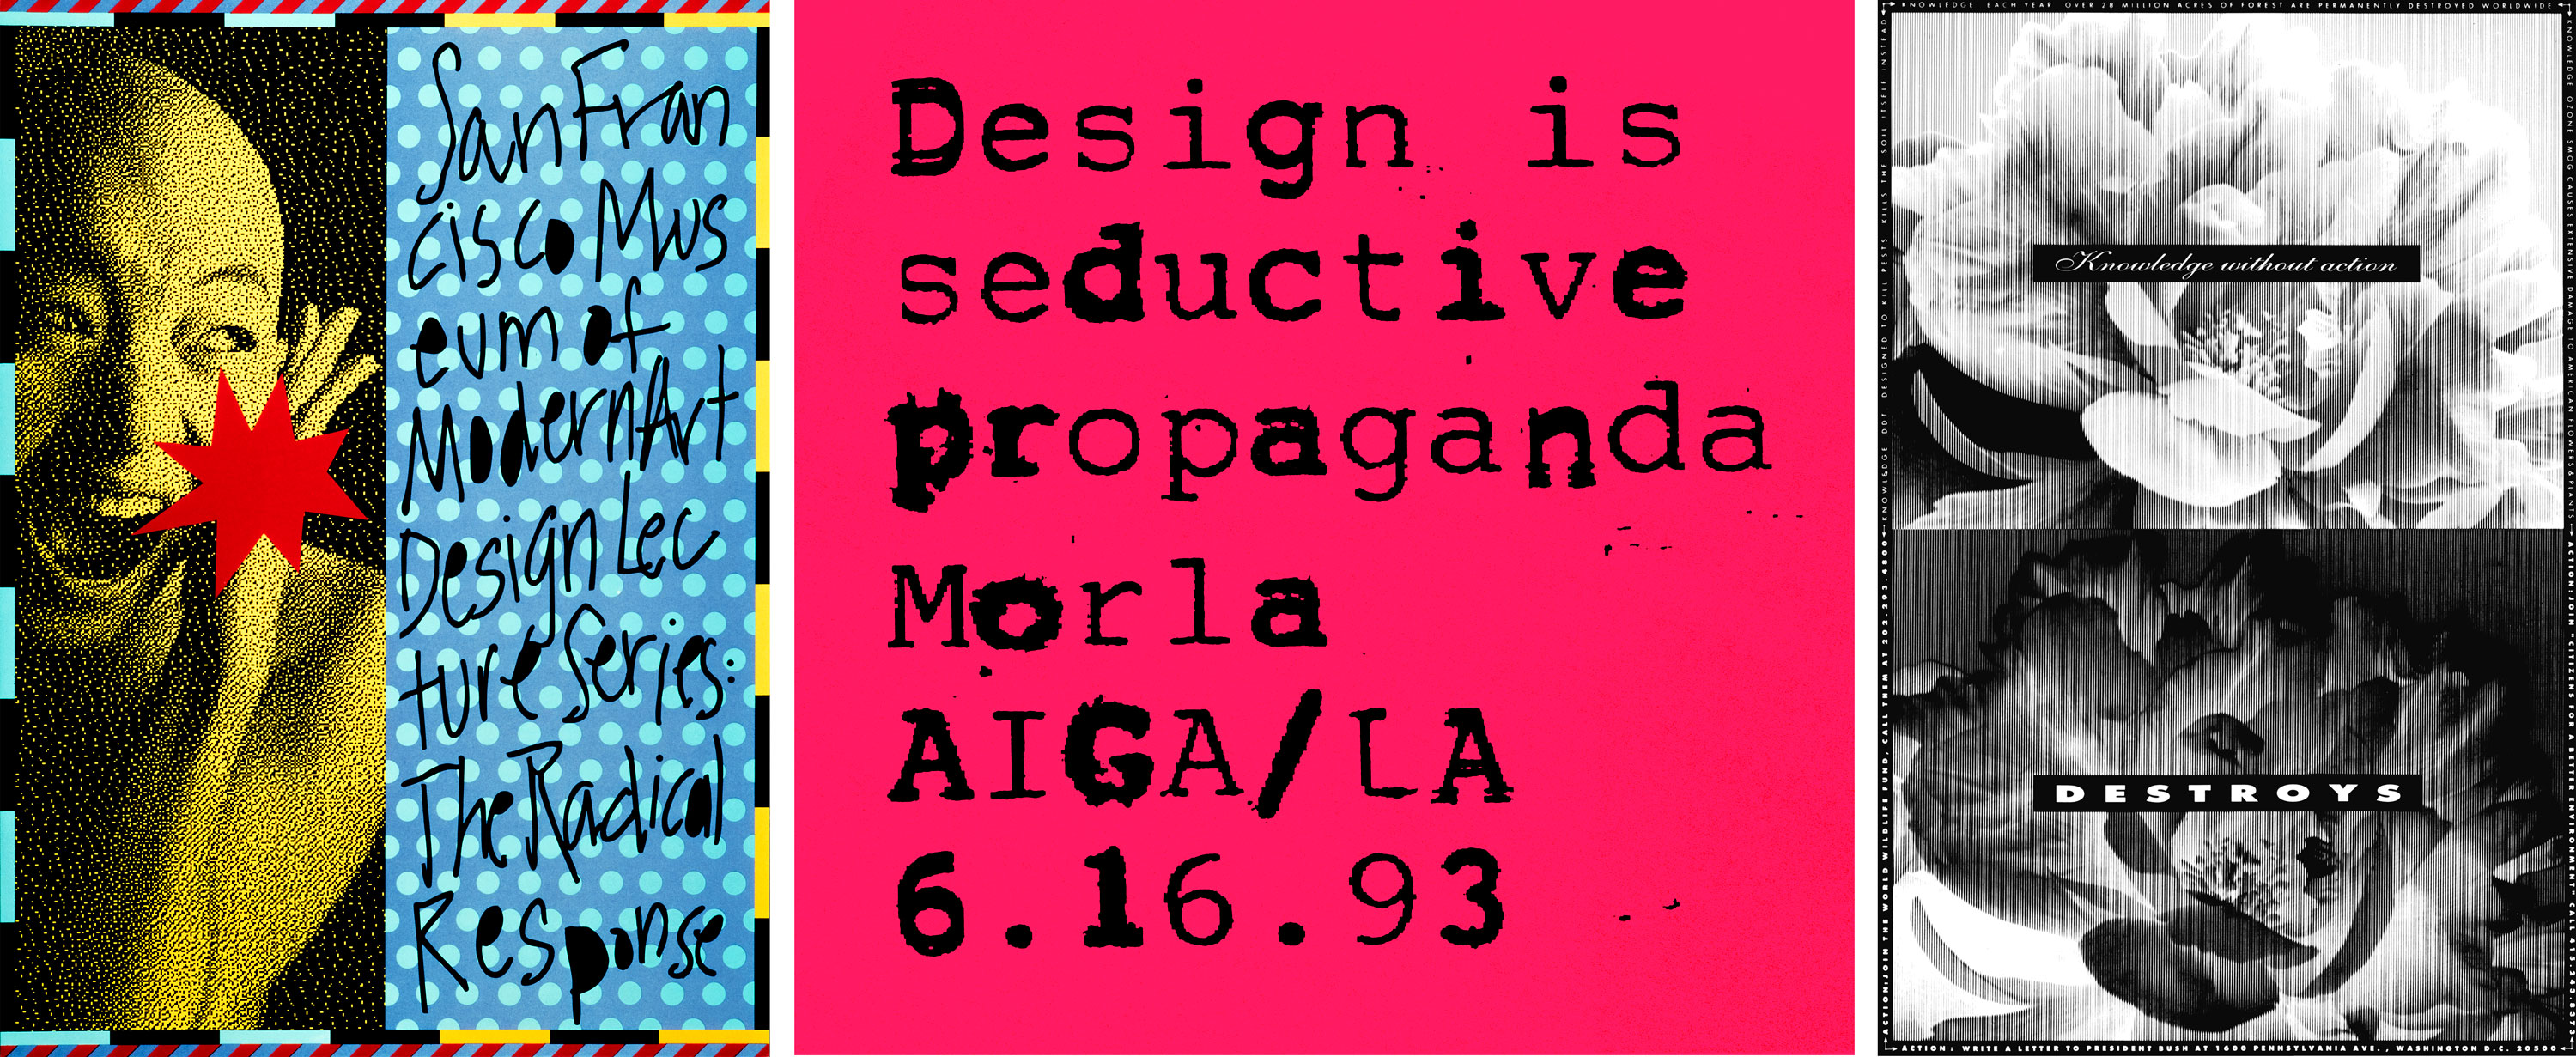 Left to Right: AIGA for SFMOMA Lecture Series; Morla Design Lecture for AIGA Los Angeles (cropped); Environmental Poster for AIGA